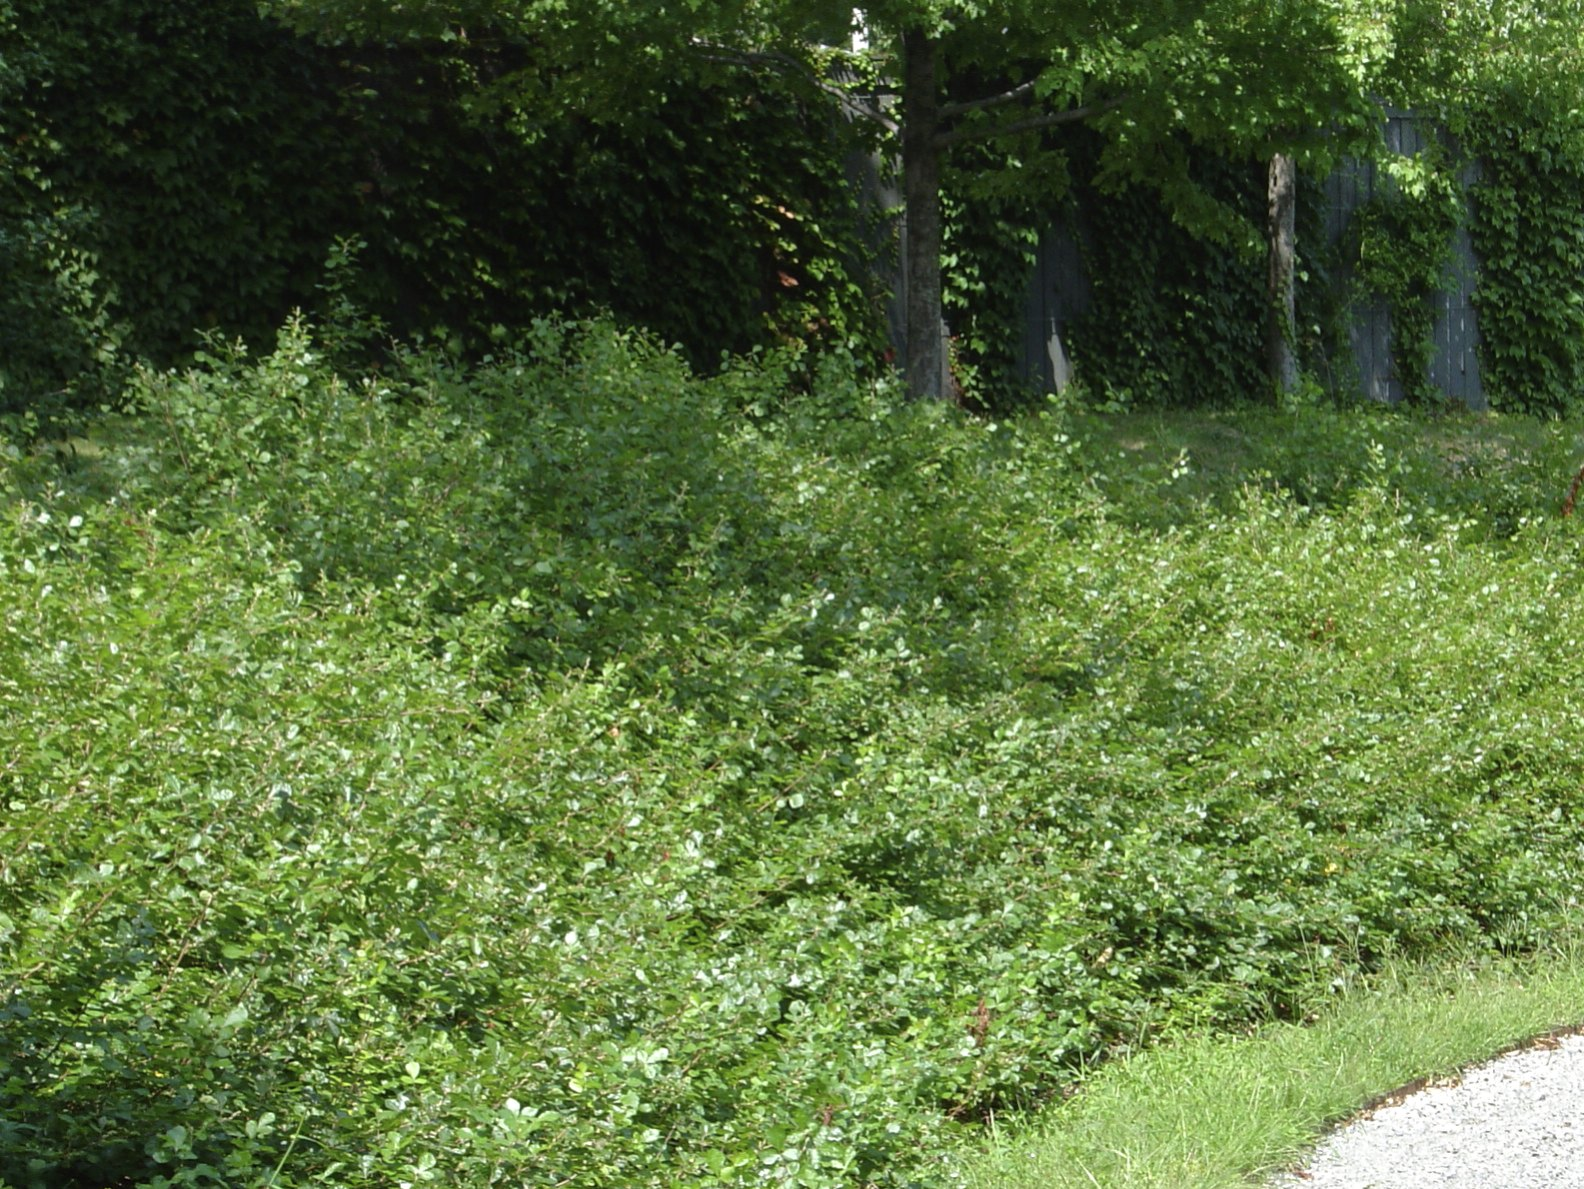 How to plant ground cover on steep bank - I First Saw A Stand Of It Growing On A Bank At Arnold Arboretum In Boston Massachusetts It Forms A Dense Groundcover